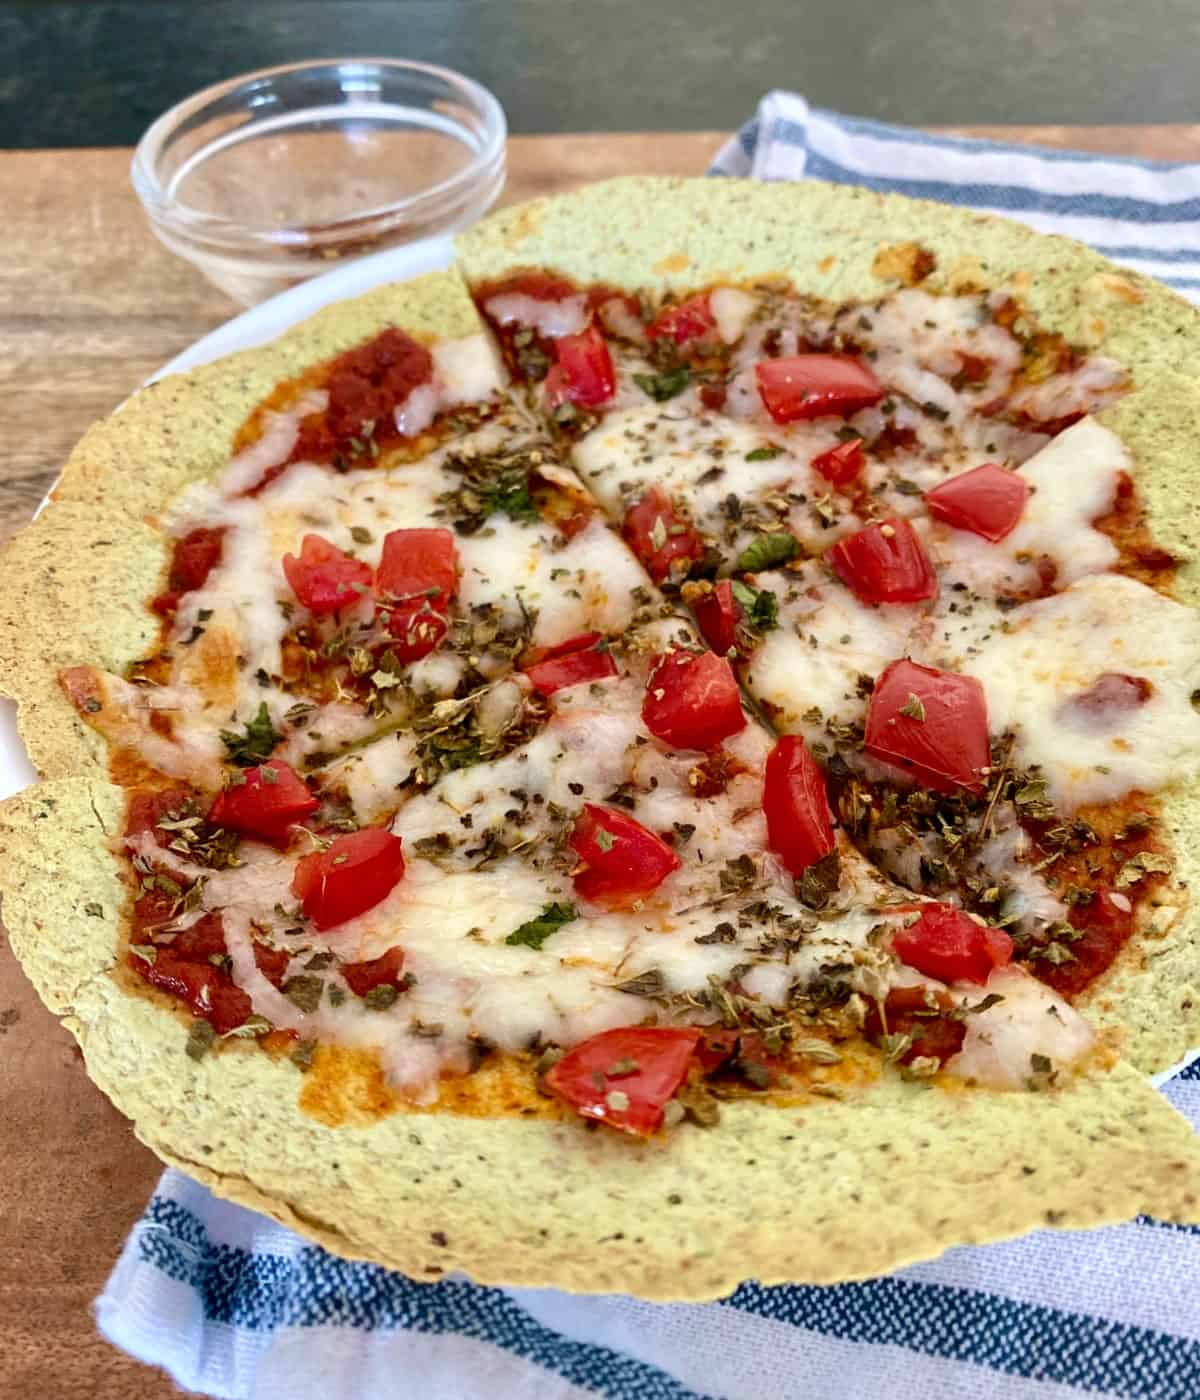 Baked tortilla pizza topped with cheese, tomatoes and basil with crushed red pepper flakes in background.